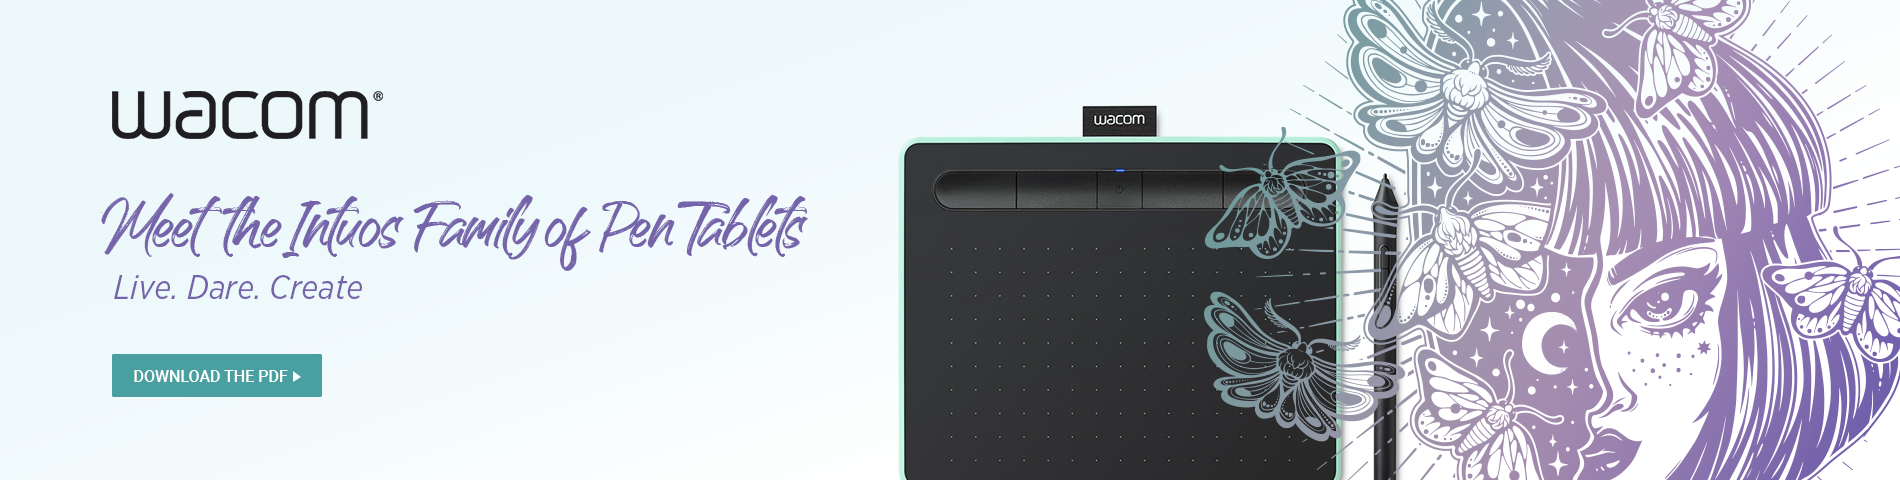 Wacom Intuos Family of Pen Tablets